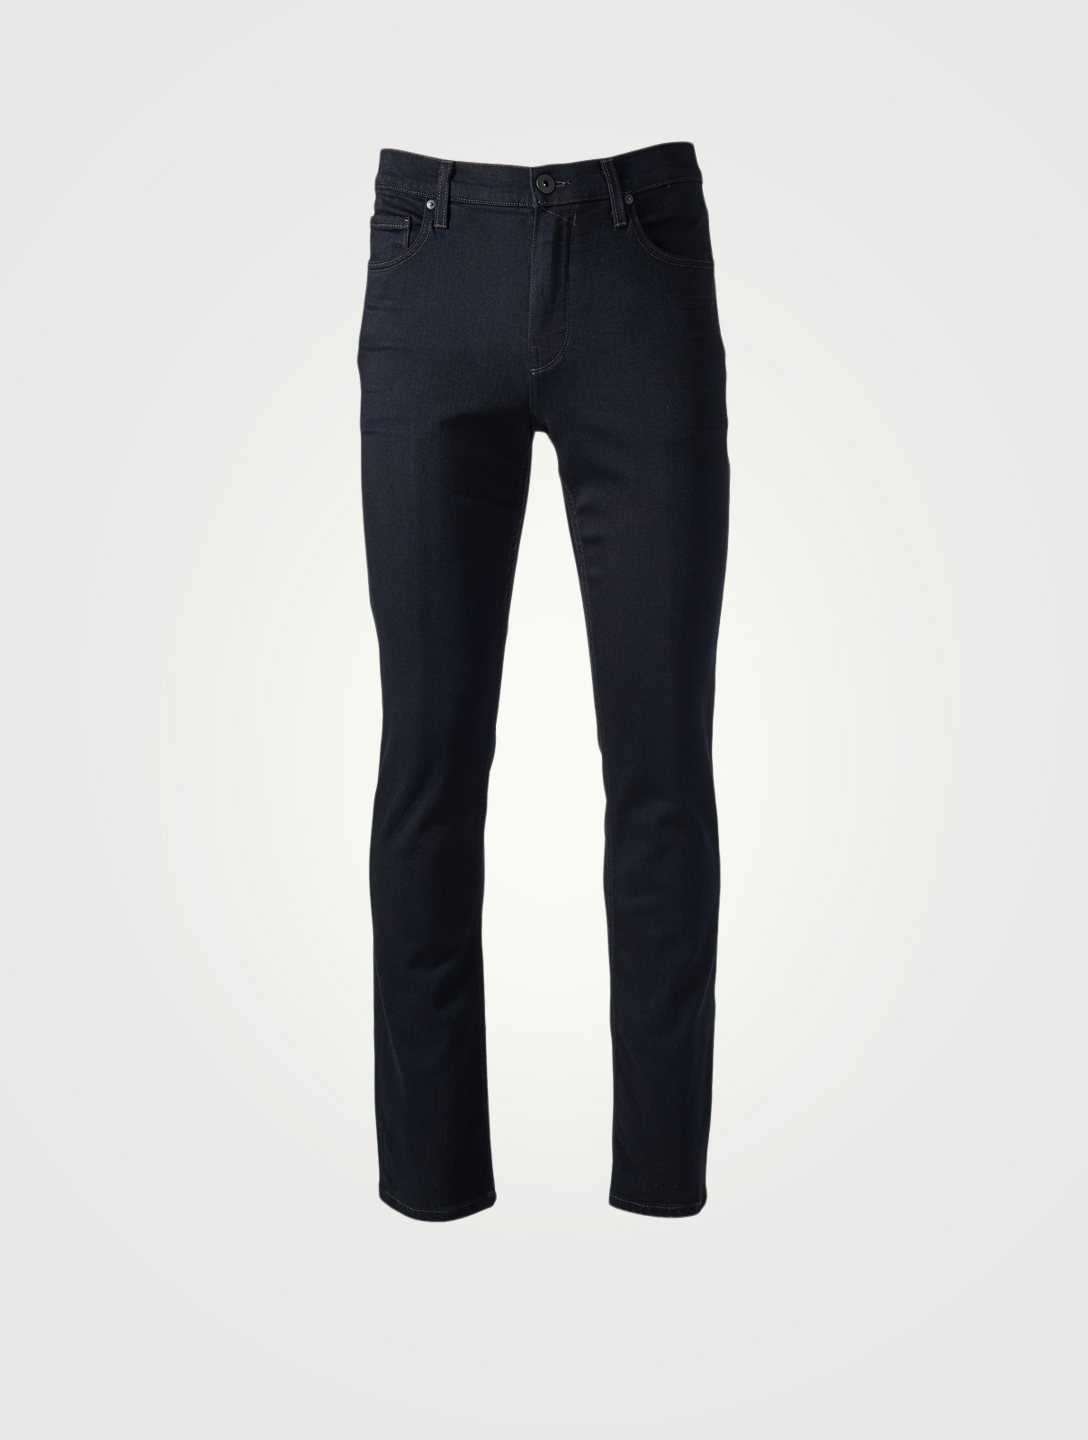 PAIGE Lennox Slim-Fit Jeans Men's Blue